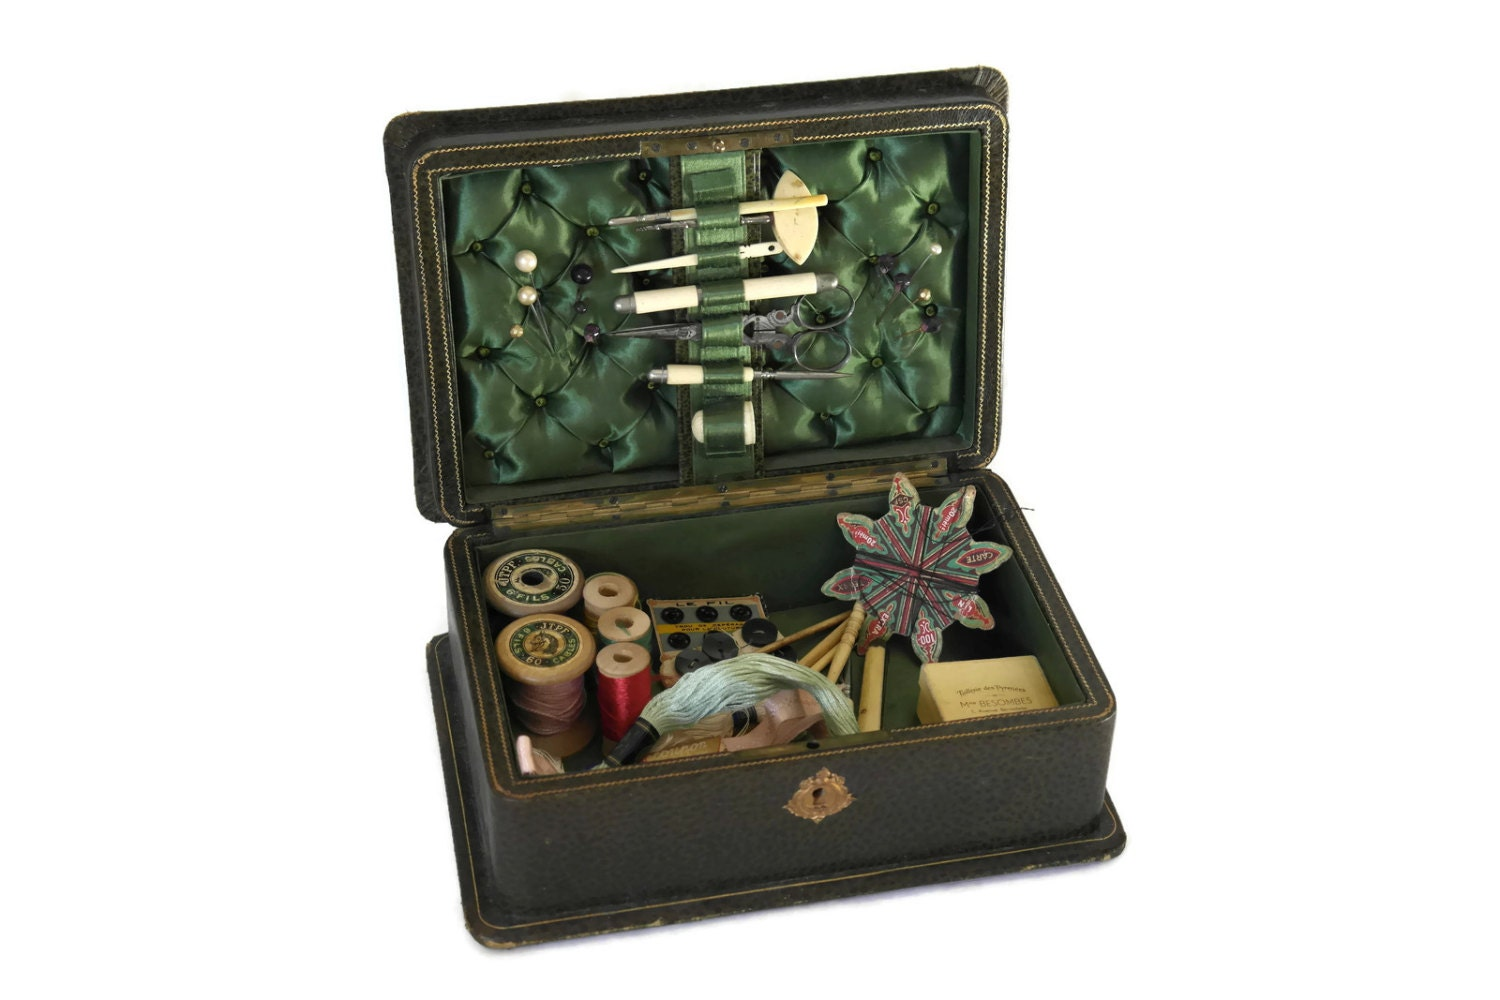 19th Century Sewing Box Antique French Sewing Casket 1800s